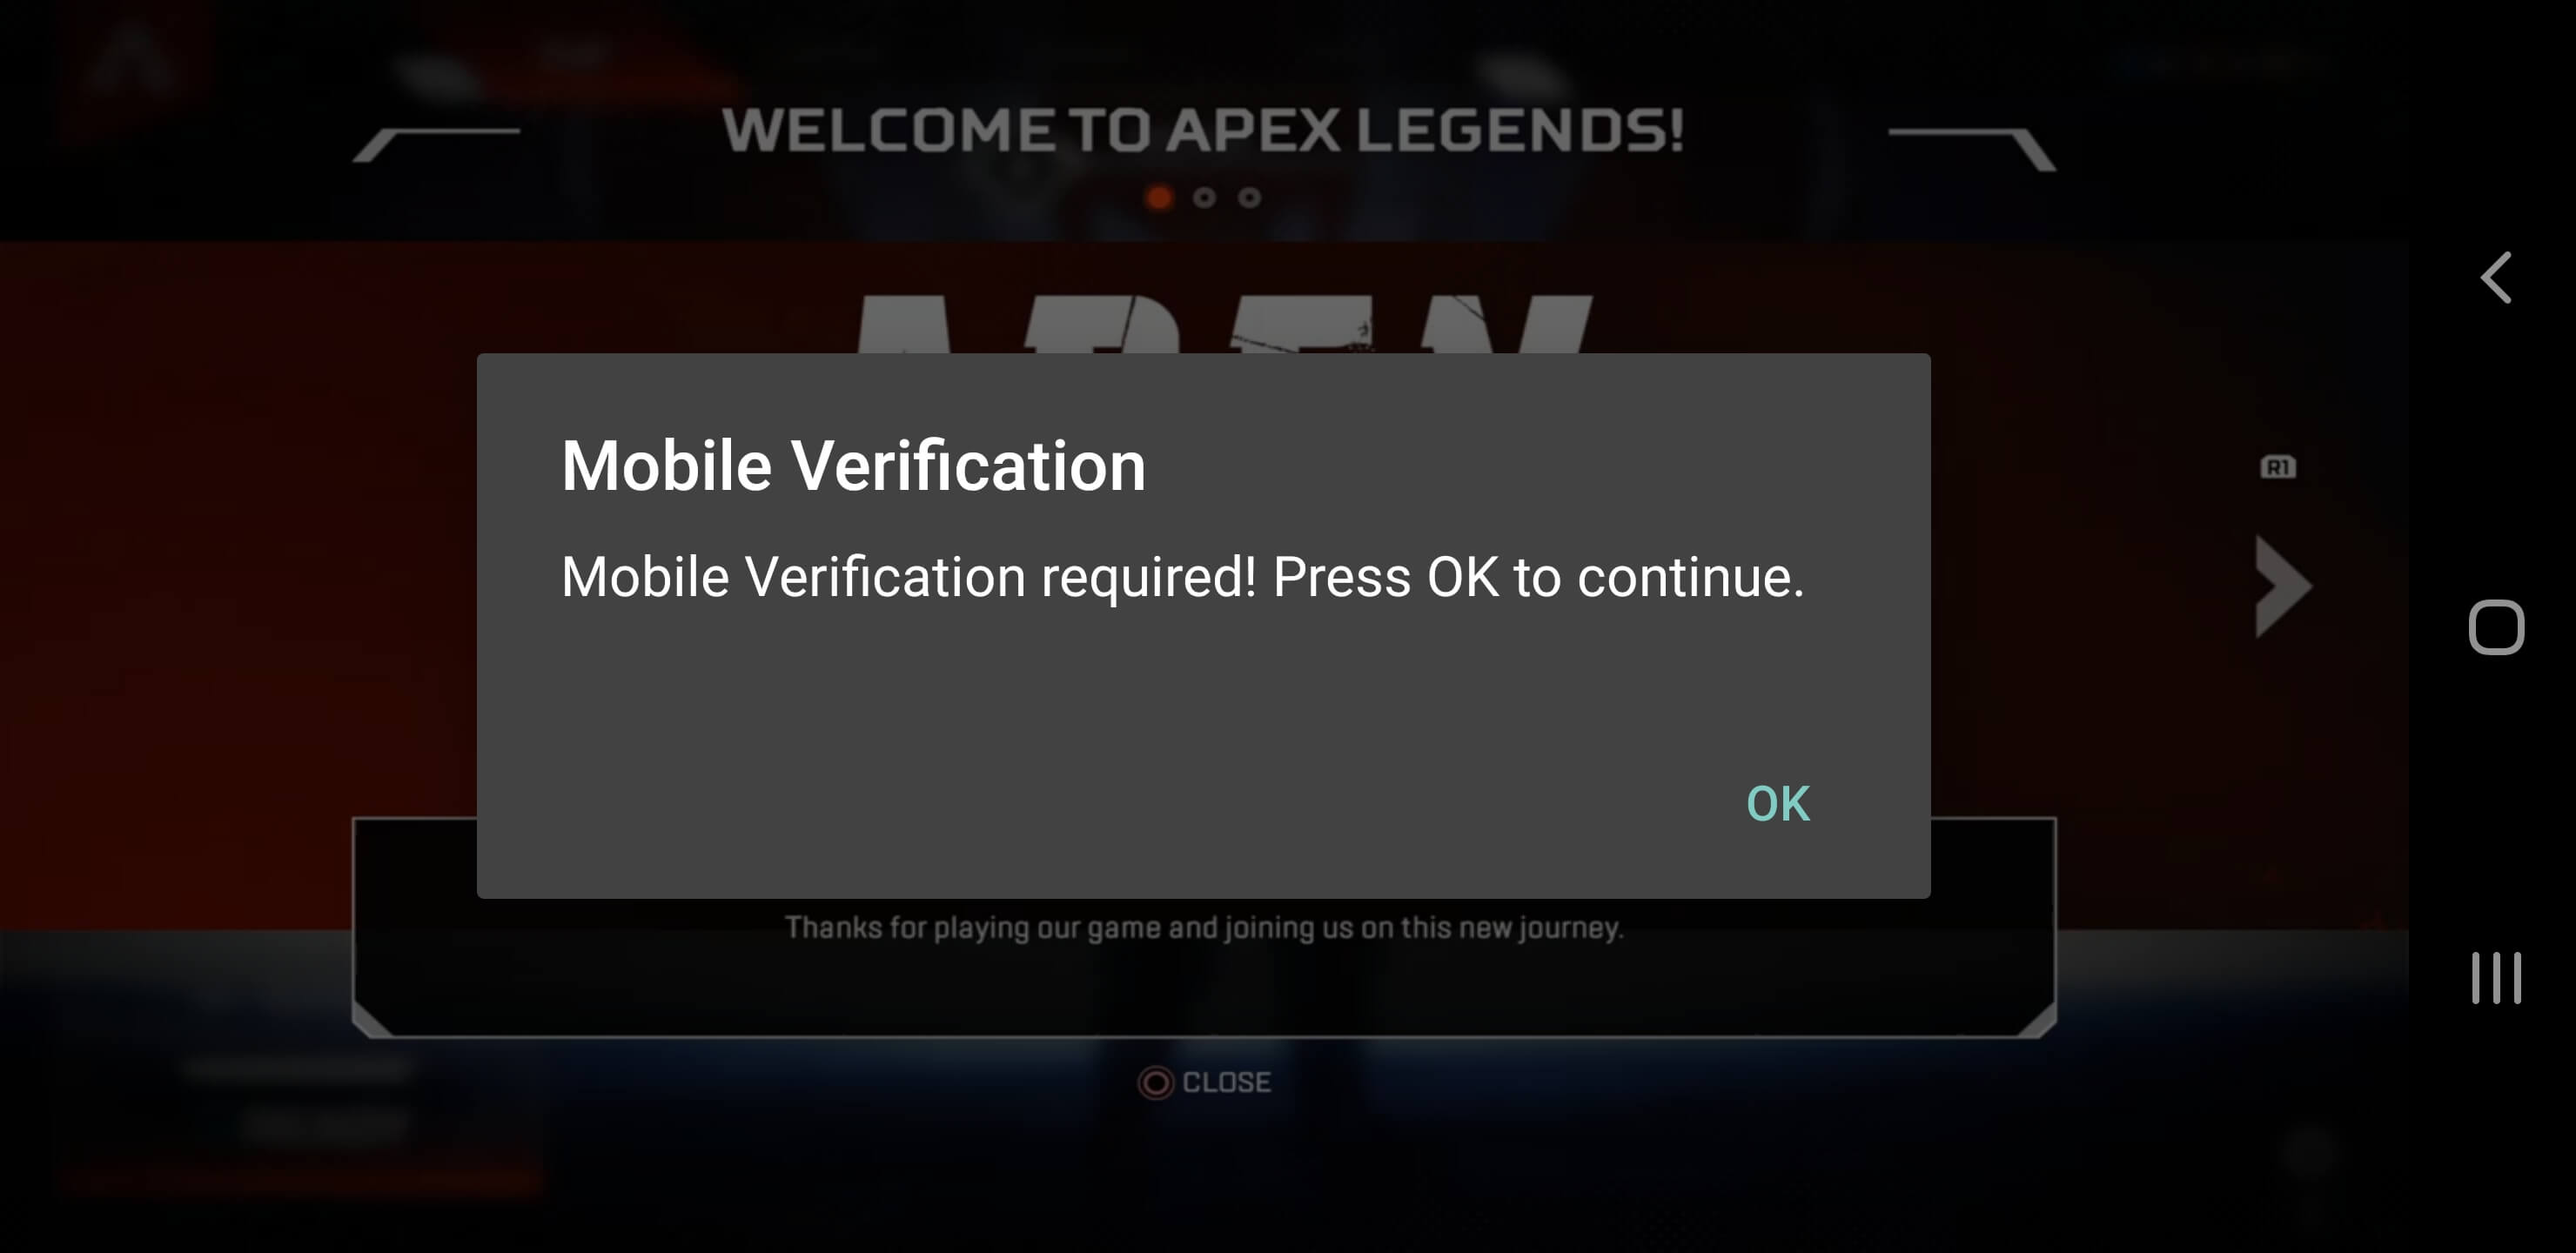 mobile verification for Apex legends on mobile